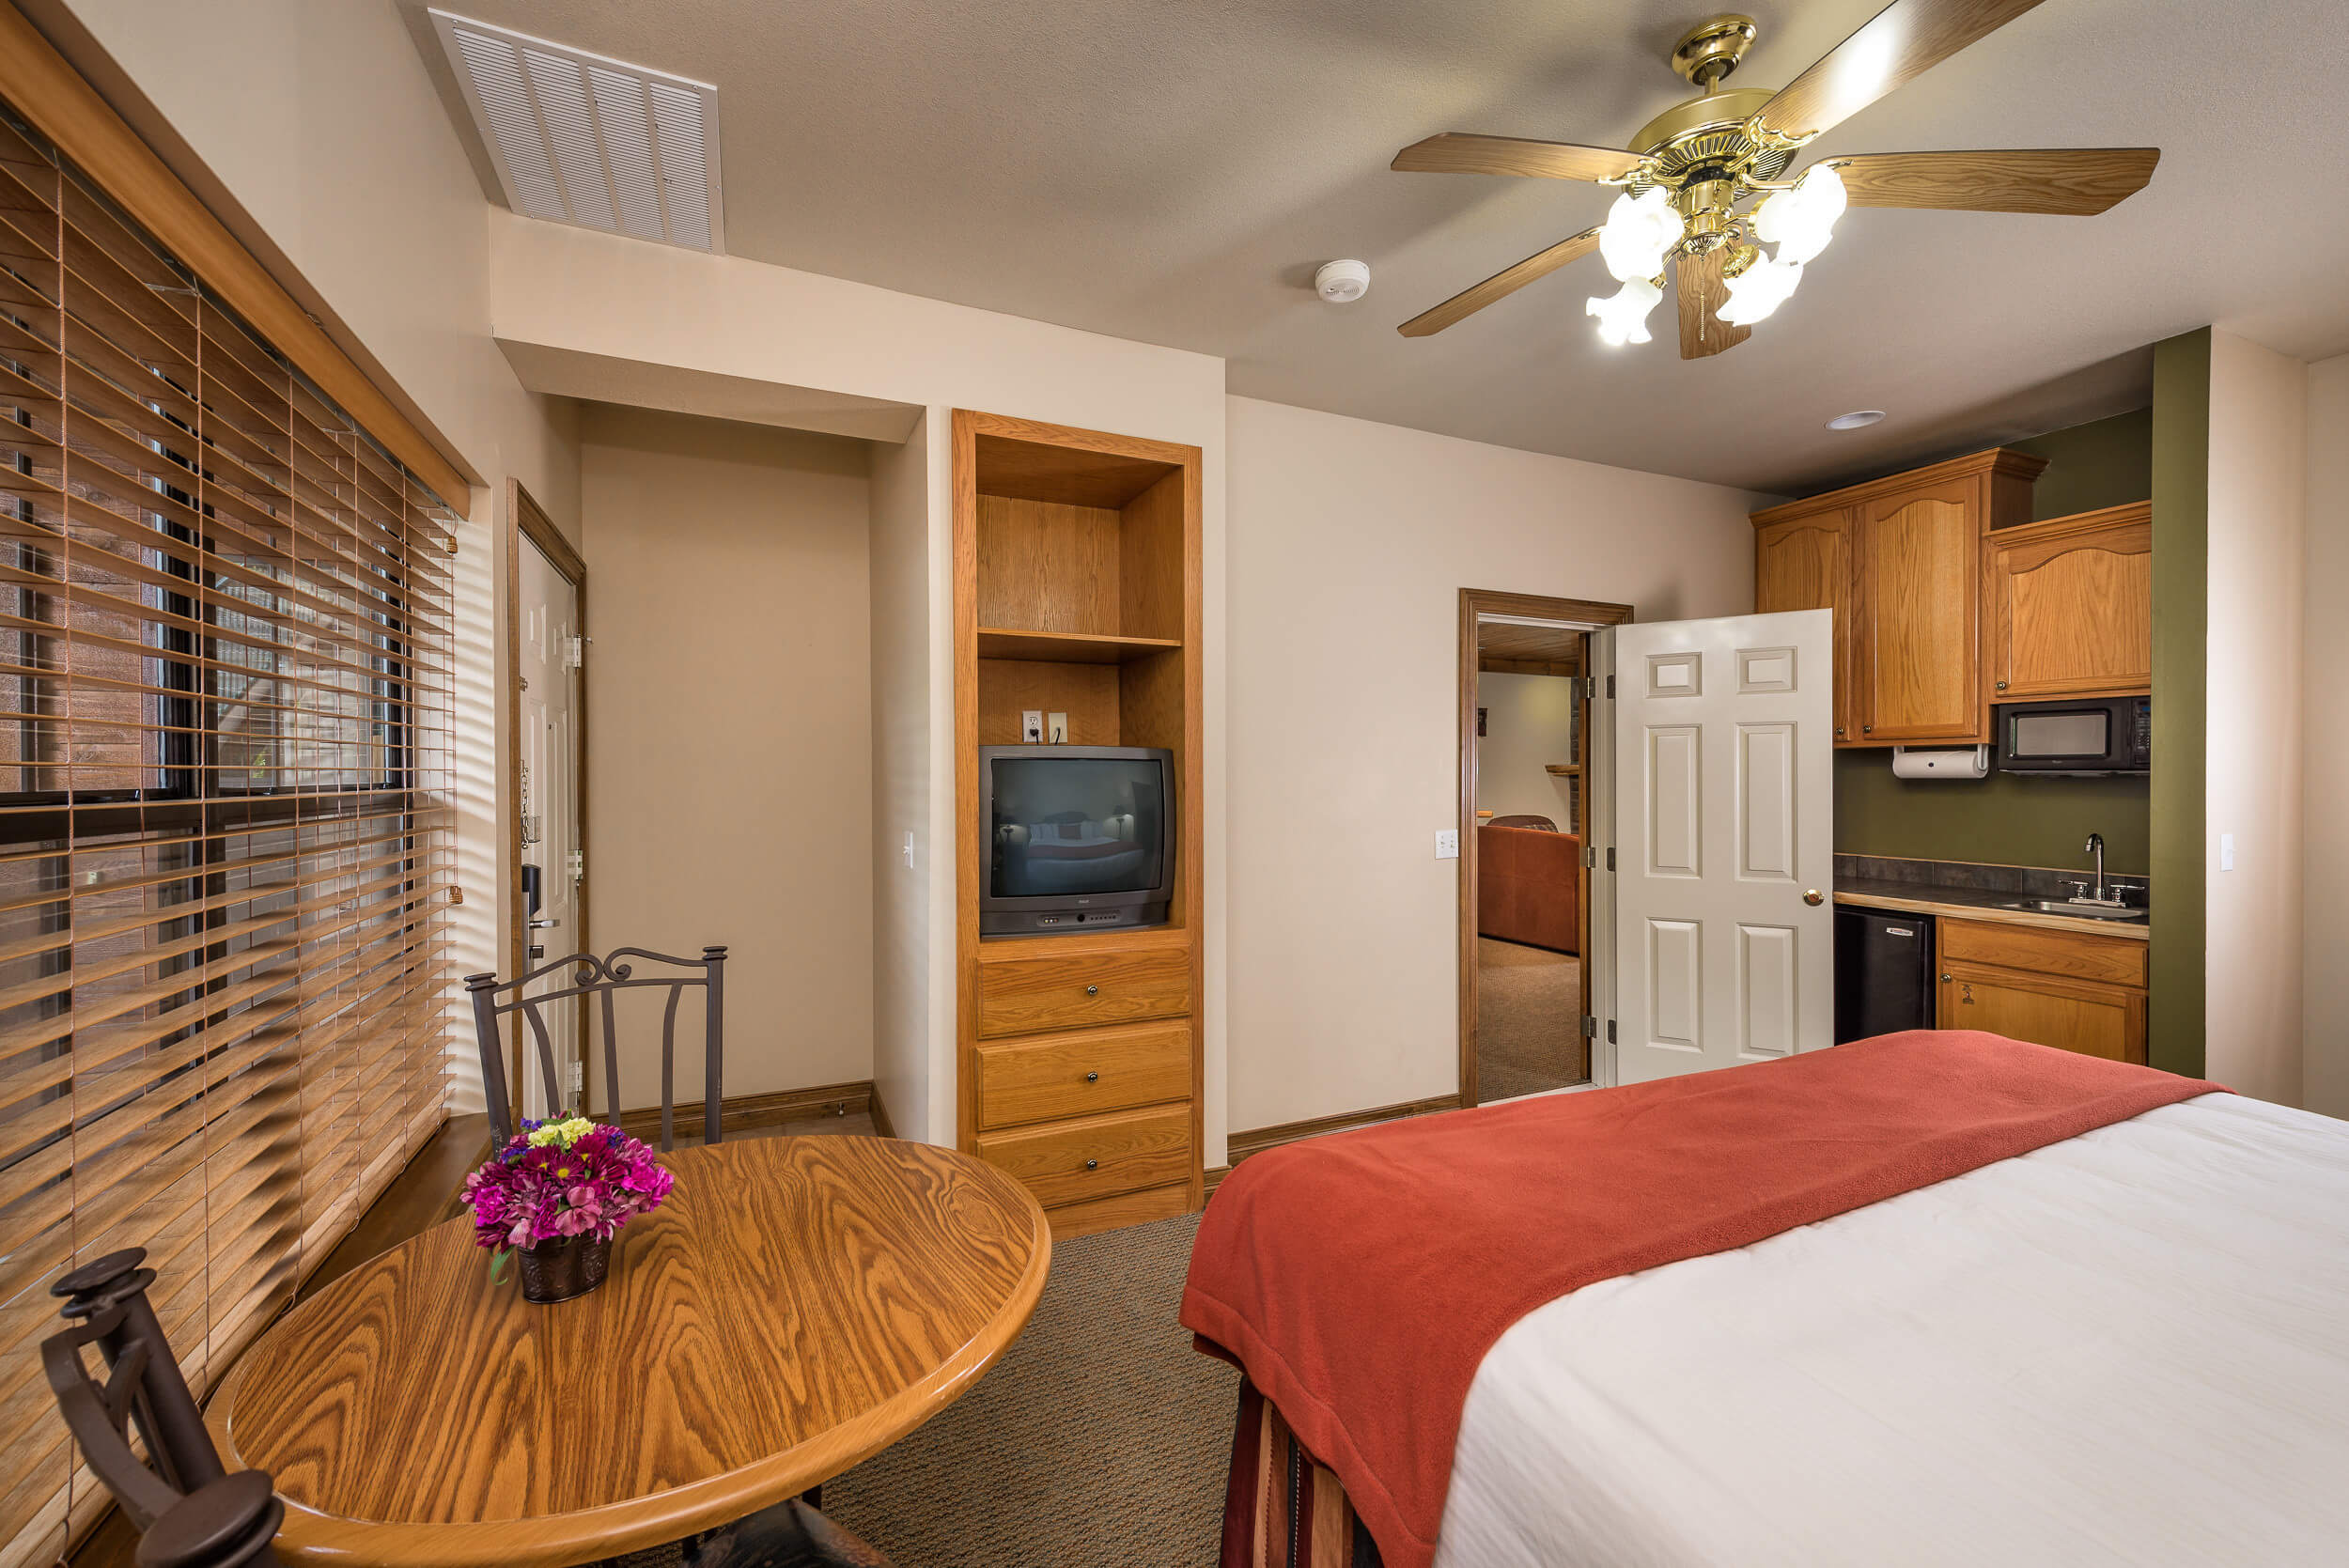 King Bed in Studio Villa | Westgate Branson Woods Resort | Westgate Resorts near Branson MO